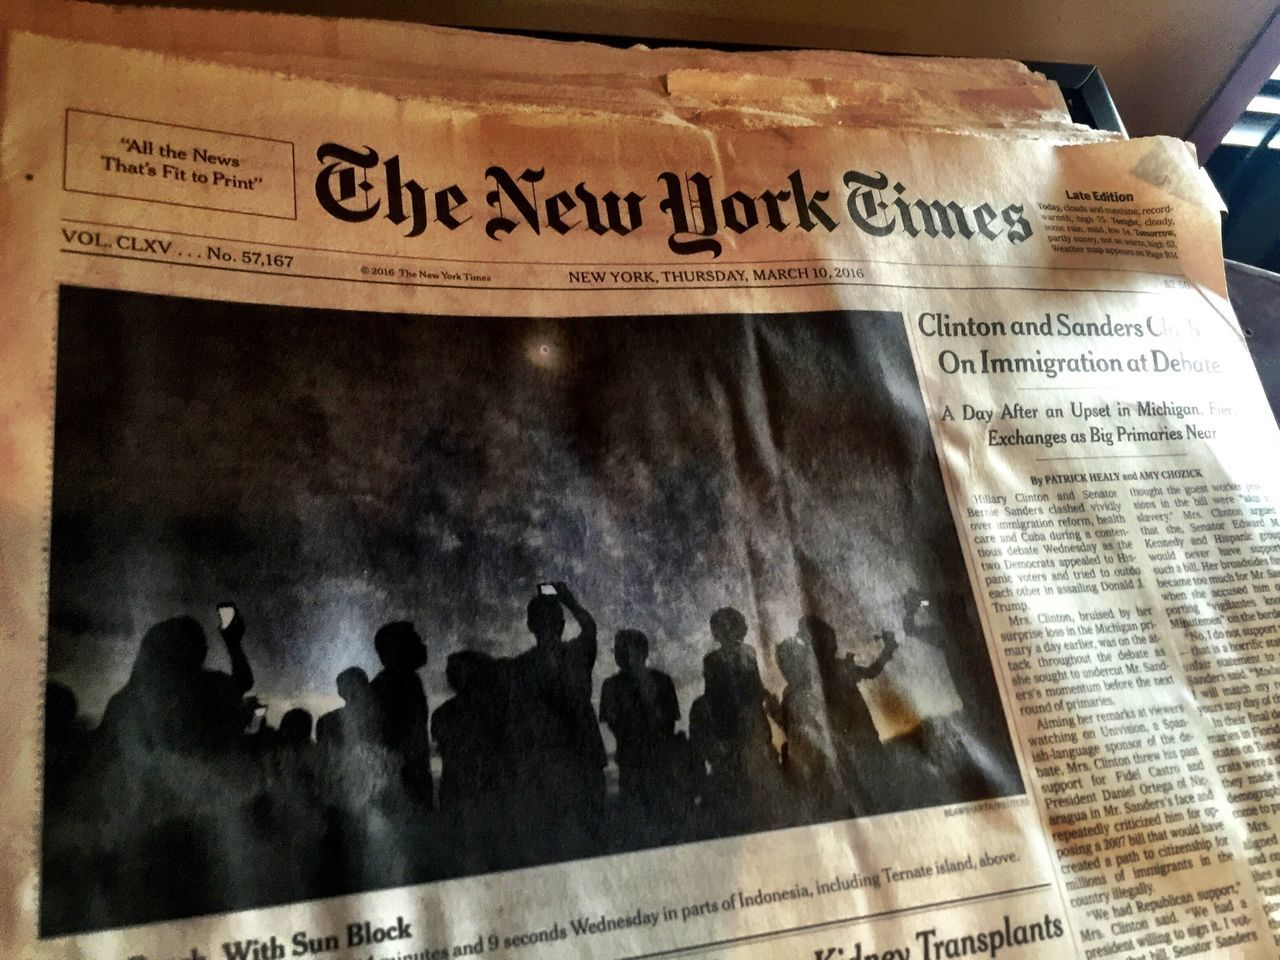 Newyorktimes Newyorkcentral People Iconic Staples Newspaper Read Daily Smelleofnewspaper